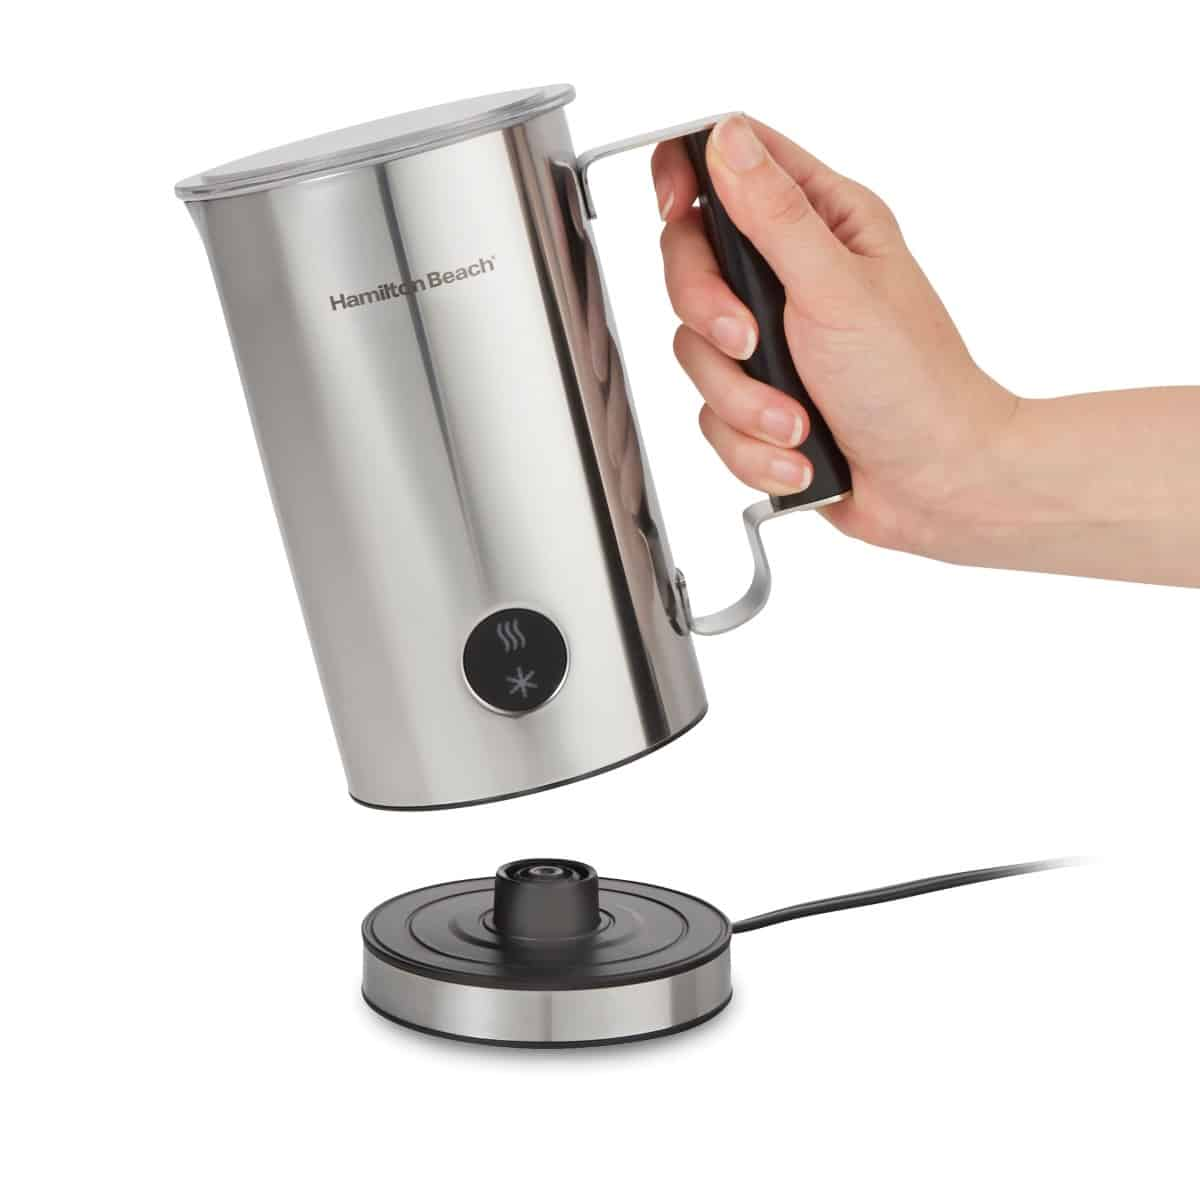 Hamilton Beach Milk Frother and Warmer for Barista Gift Guide